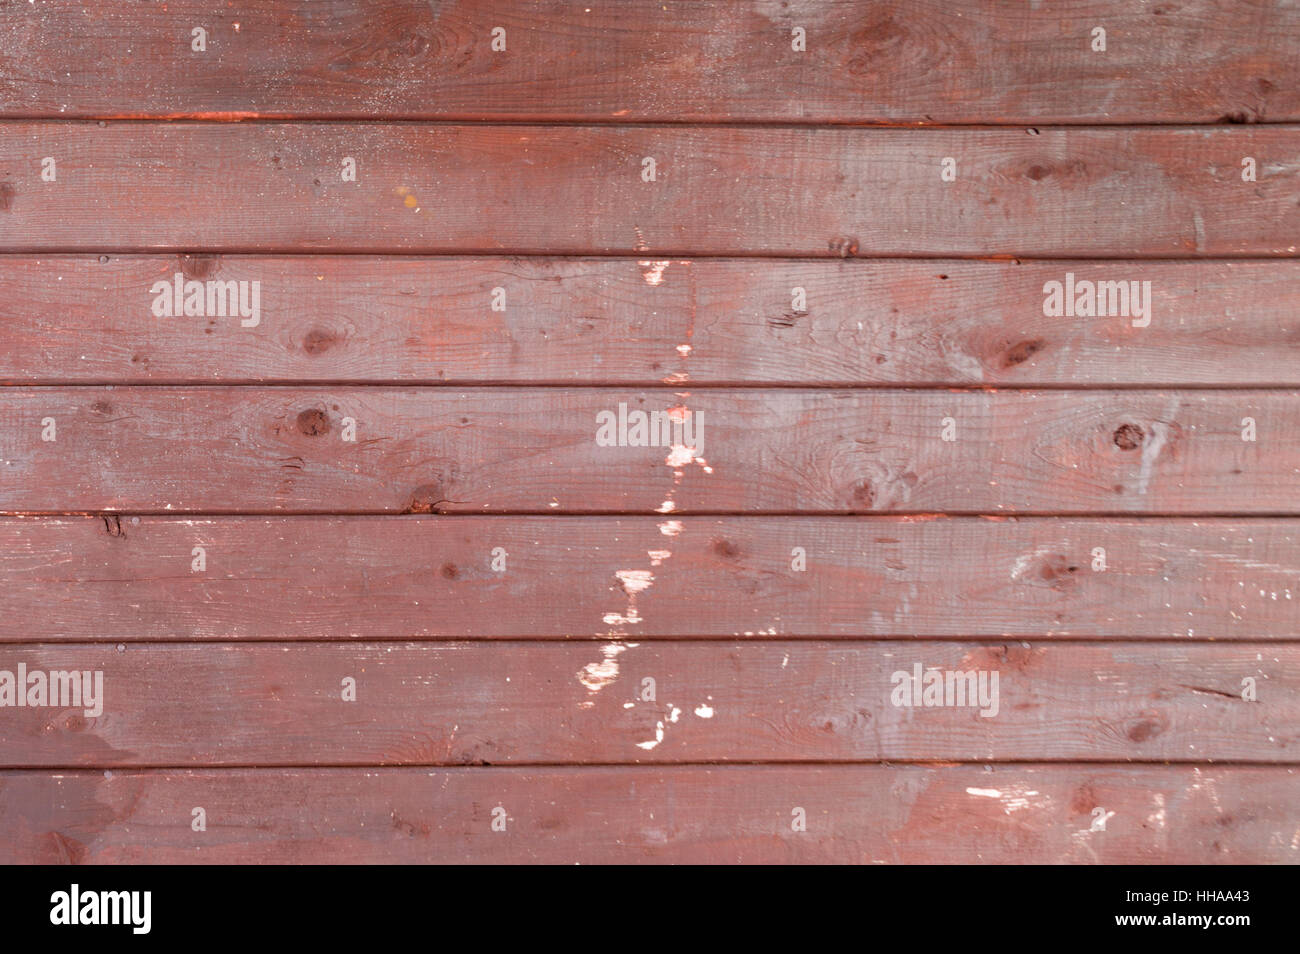 7 horizontal red worn painted wooden boards or planks rustic rural background - Stock Image